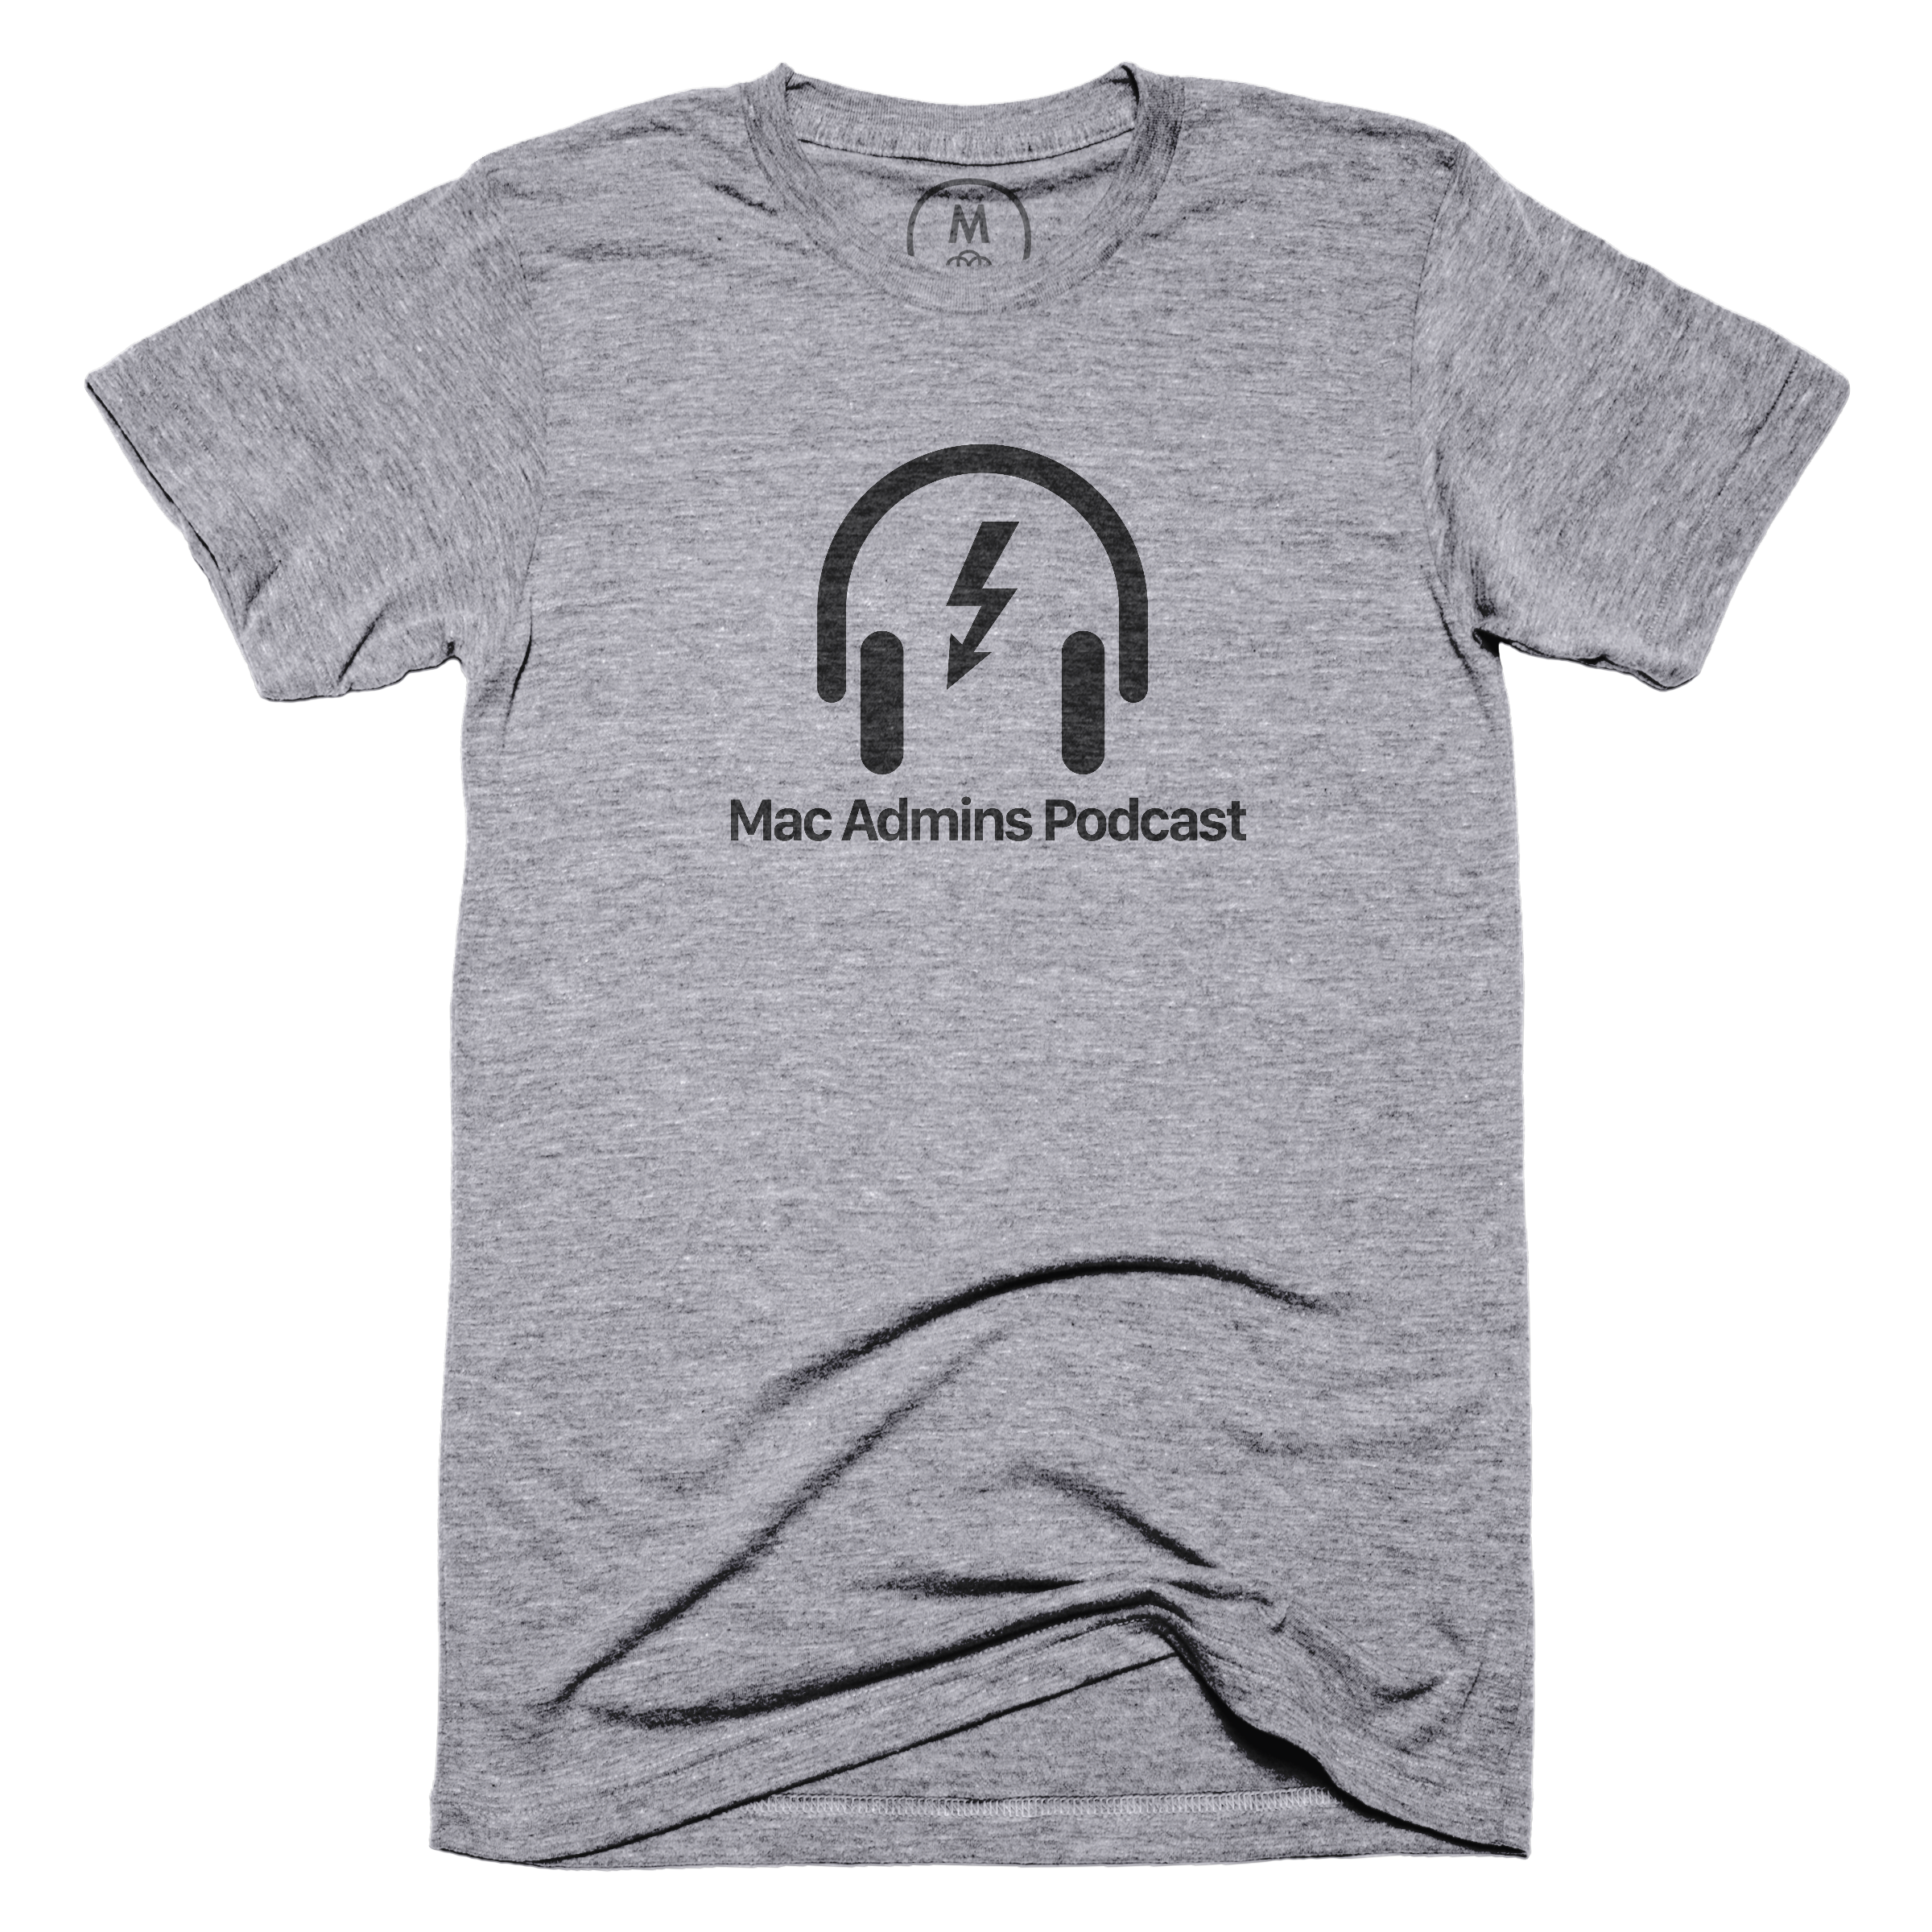 Mac Admins Podcast Premium Heather (Men's)